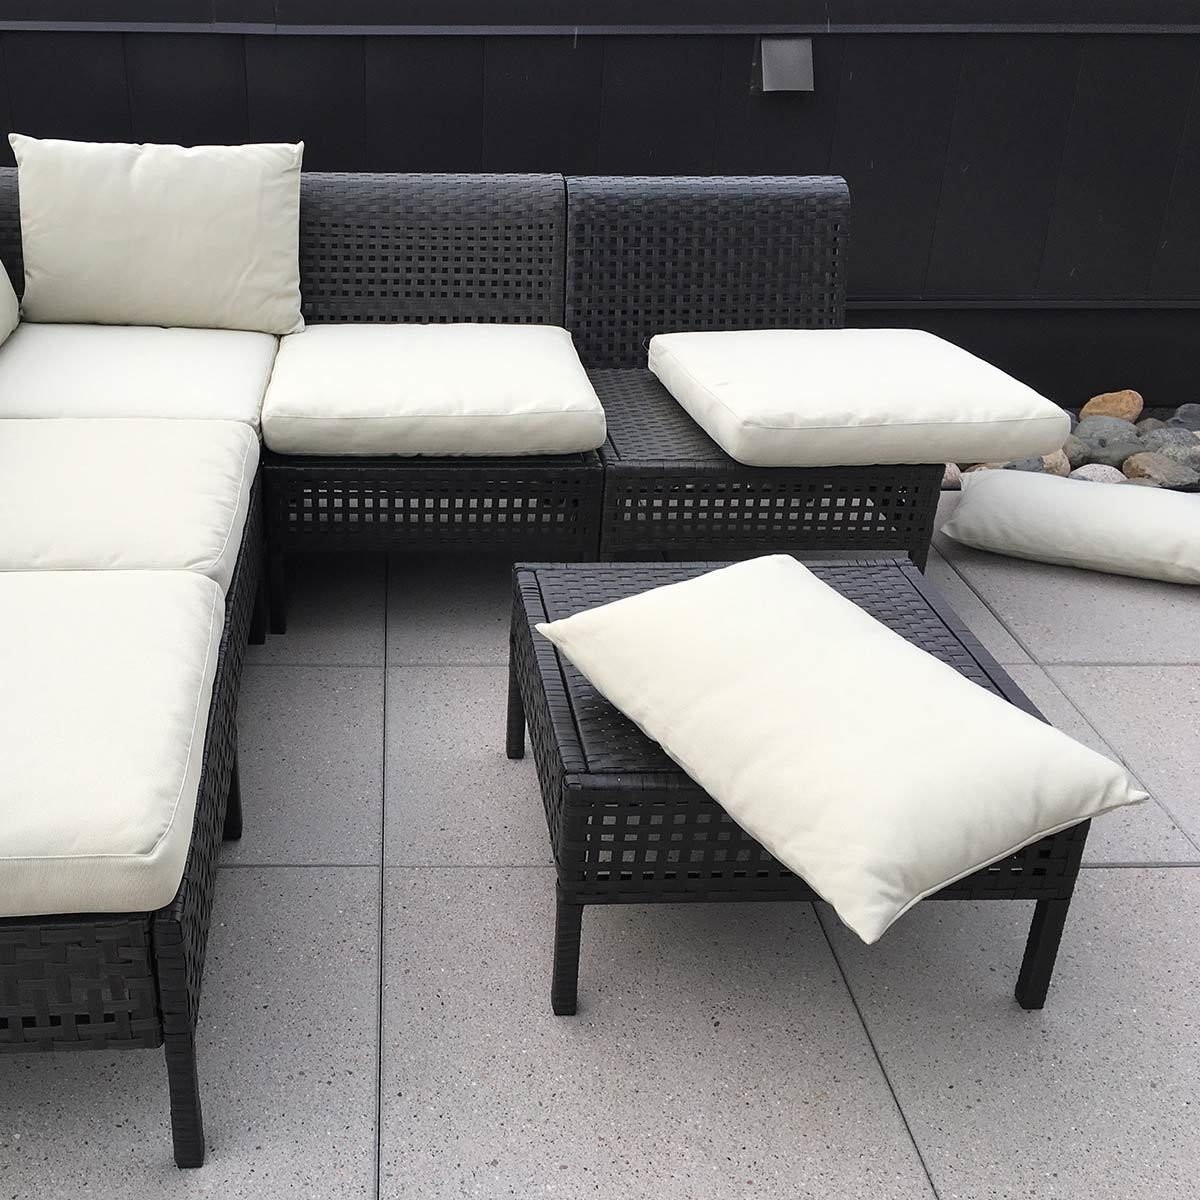 Incredible Ikea Hacks Add Ties To Outdoor Ikea Patio Cushions Inzonedesignstudio Interior Chair Design Inzonedesignstudiocom